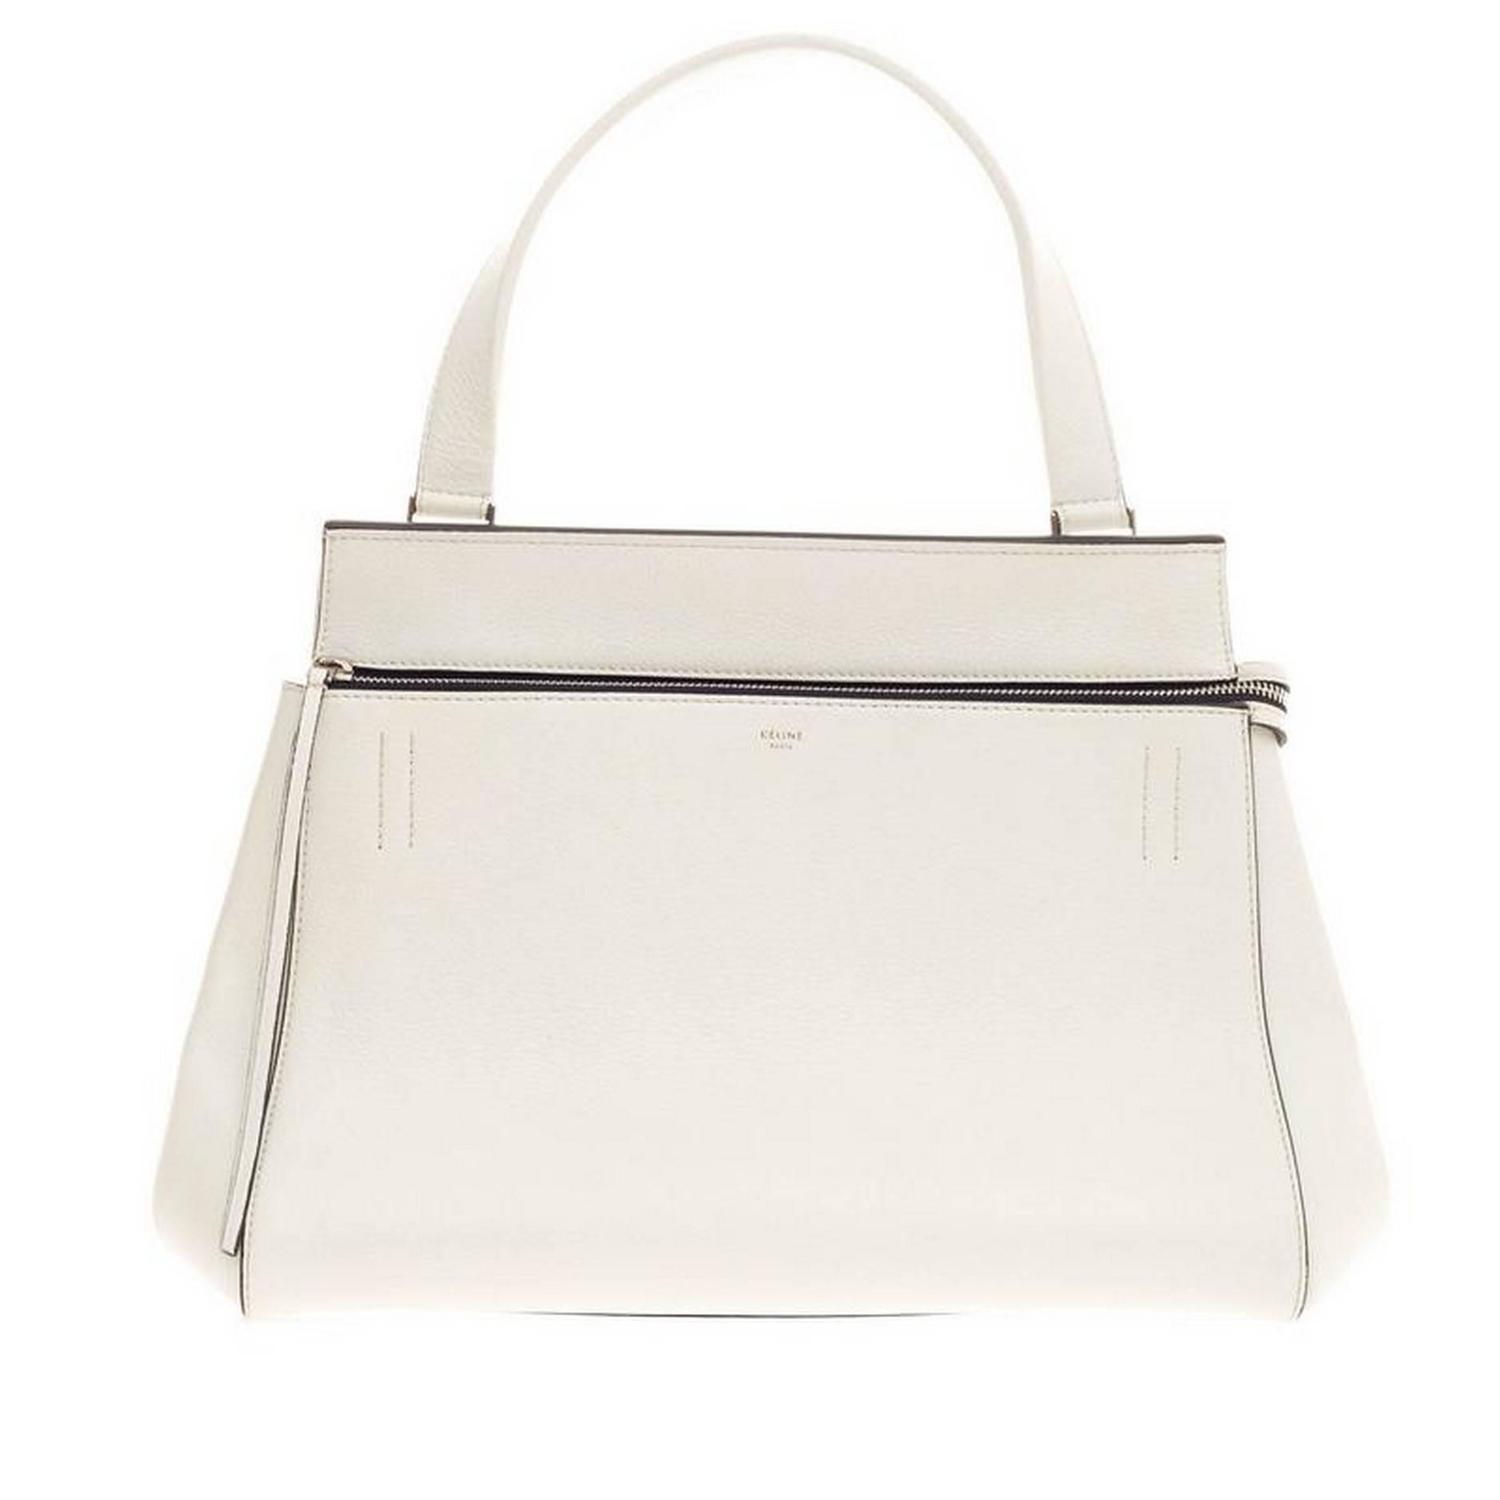 celine micro bags - Celine Edge Bag Leather Medium at 1stdibs